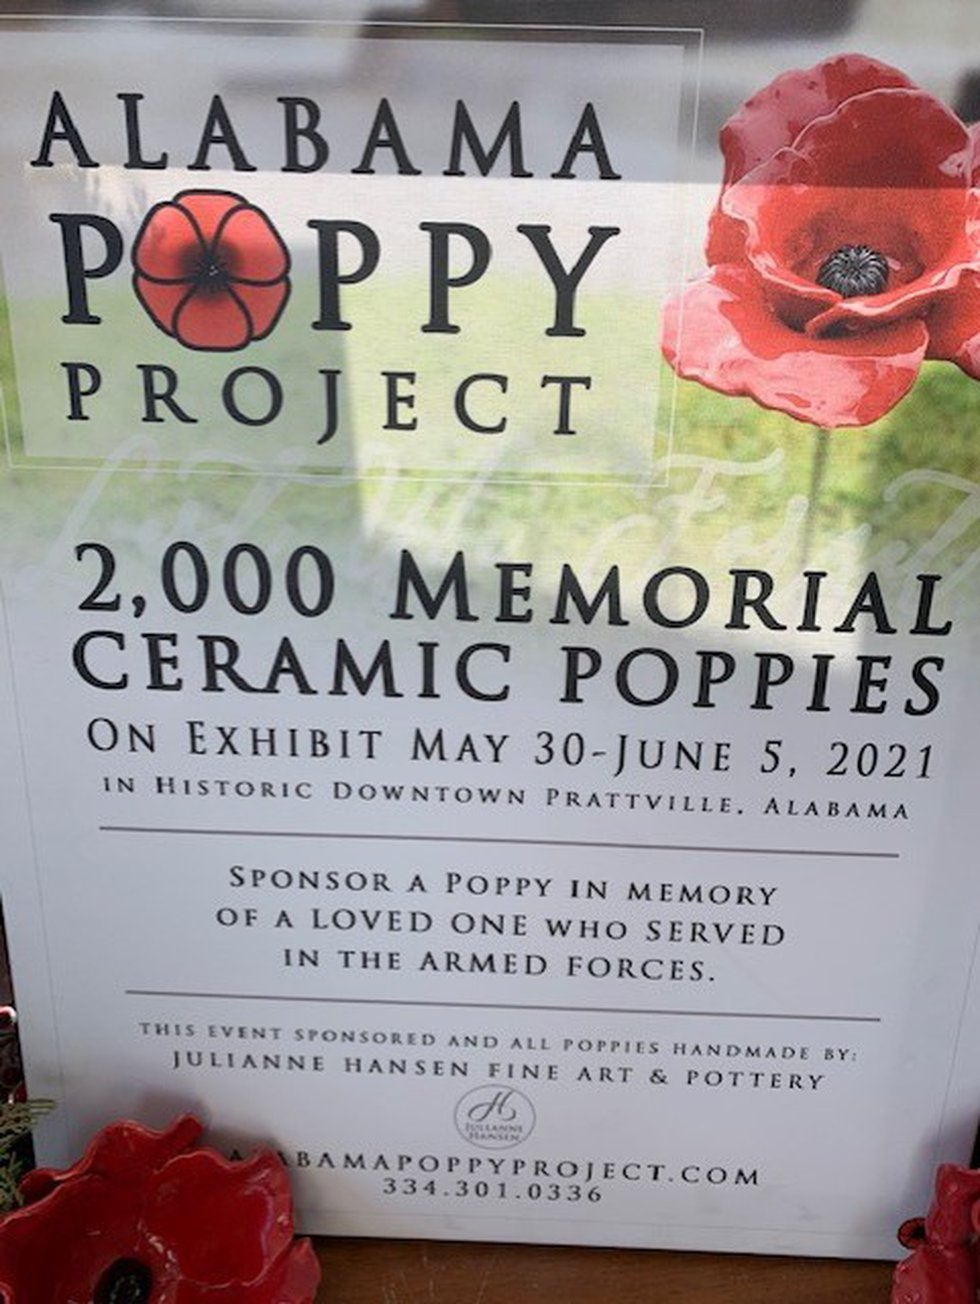 Poppy Project helps others who have also suffered such a loss experience healing,